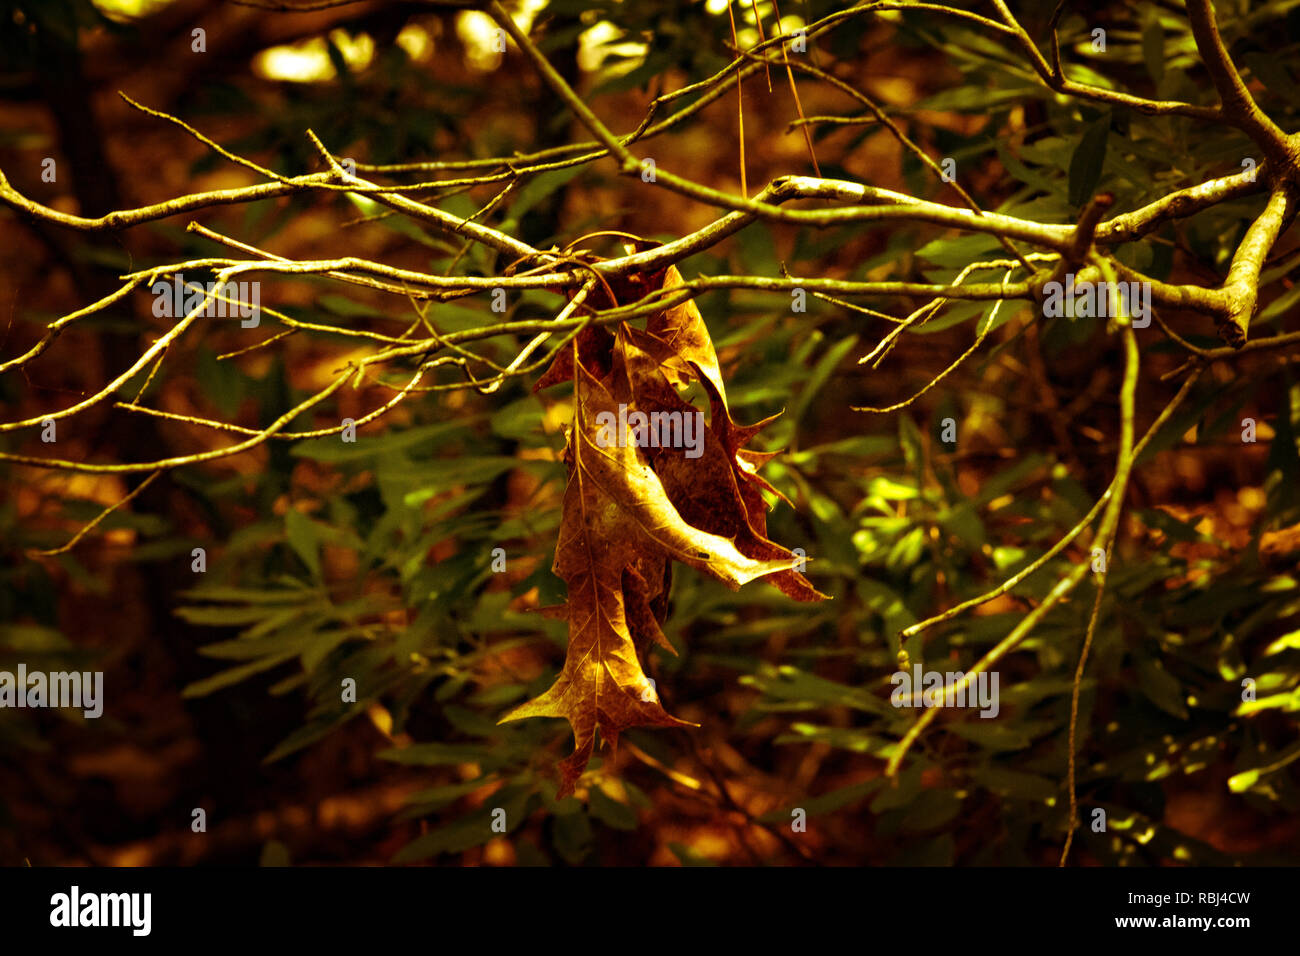 Branches and leaves - Stock Image